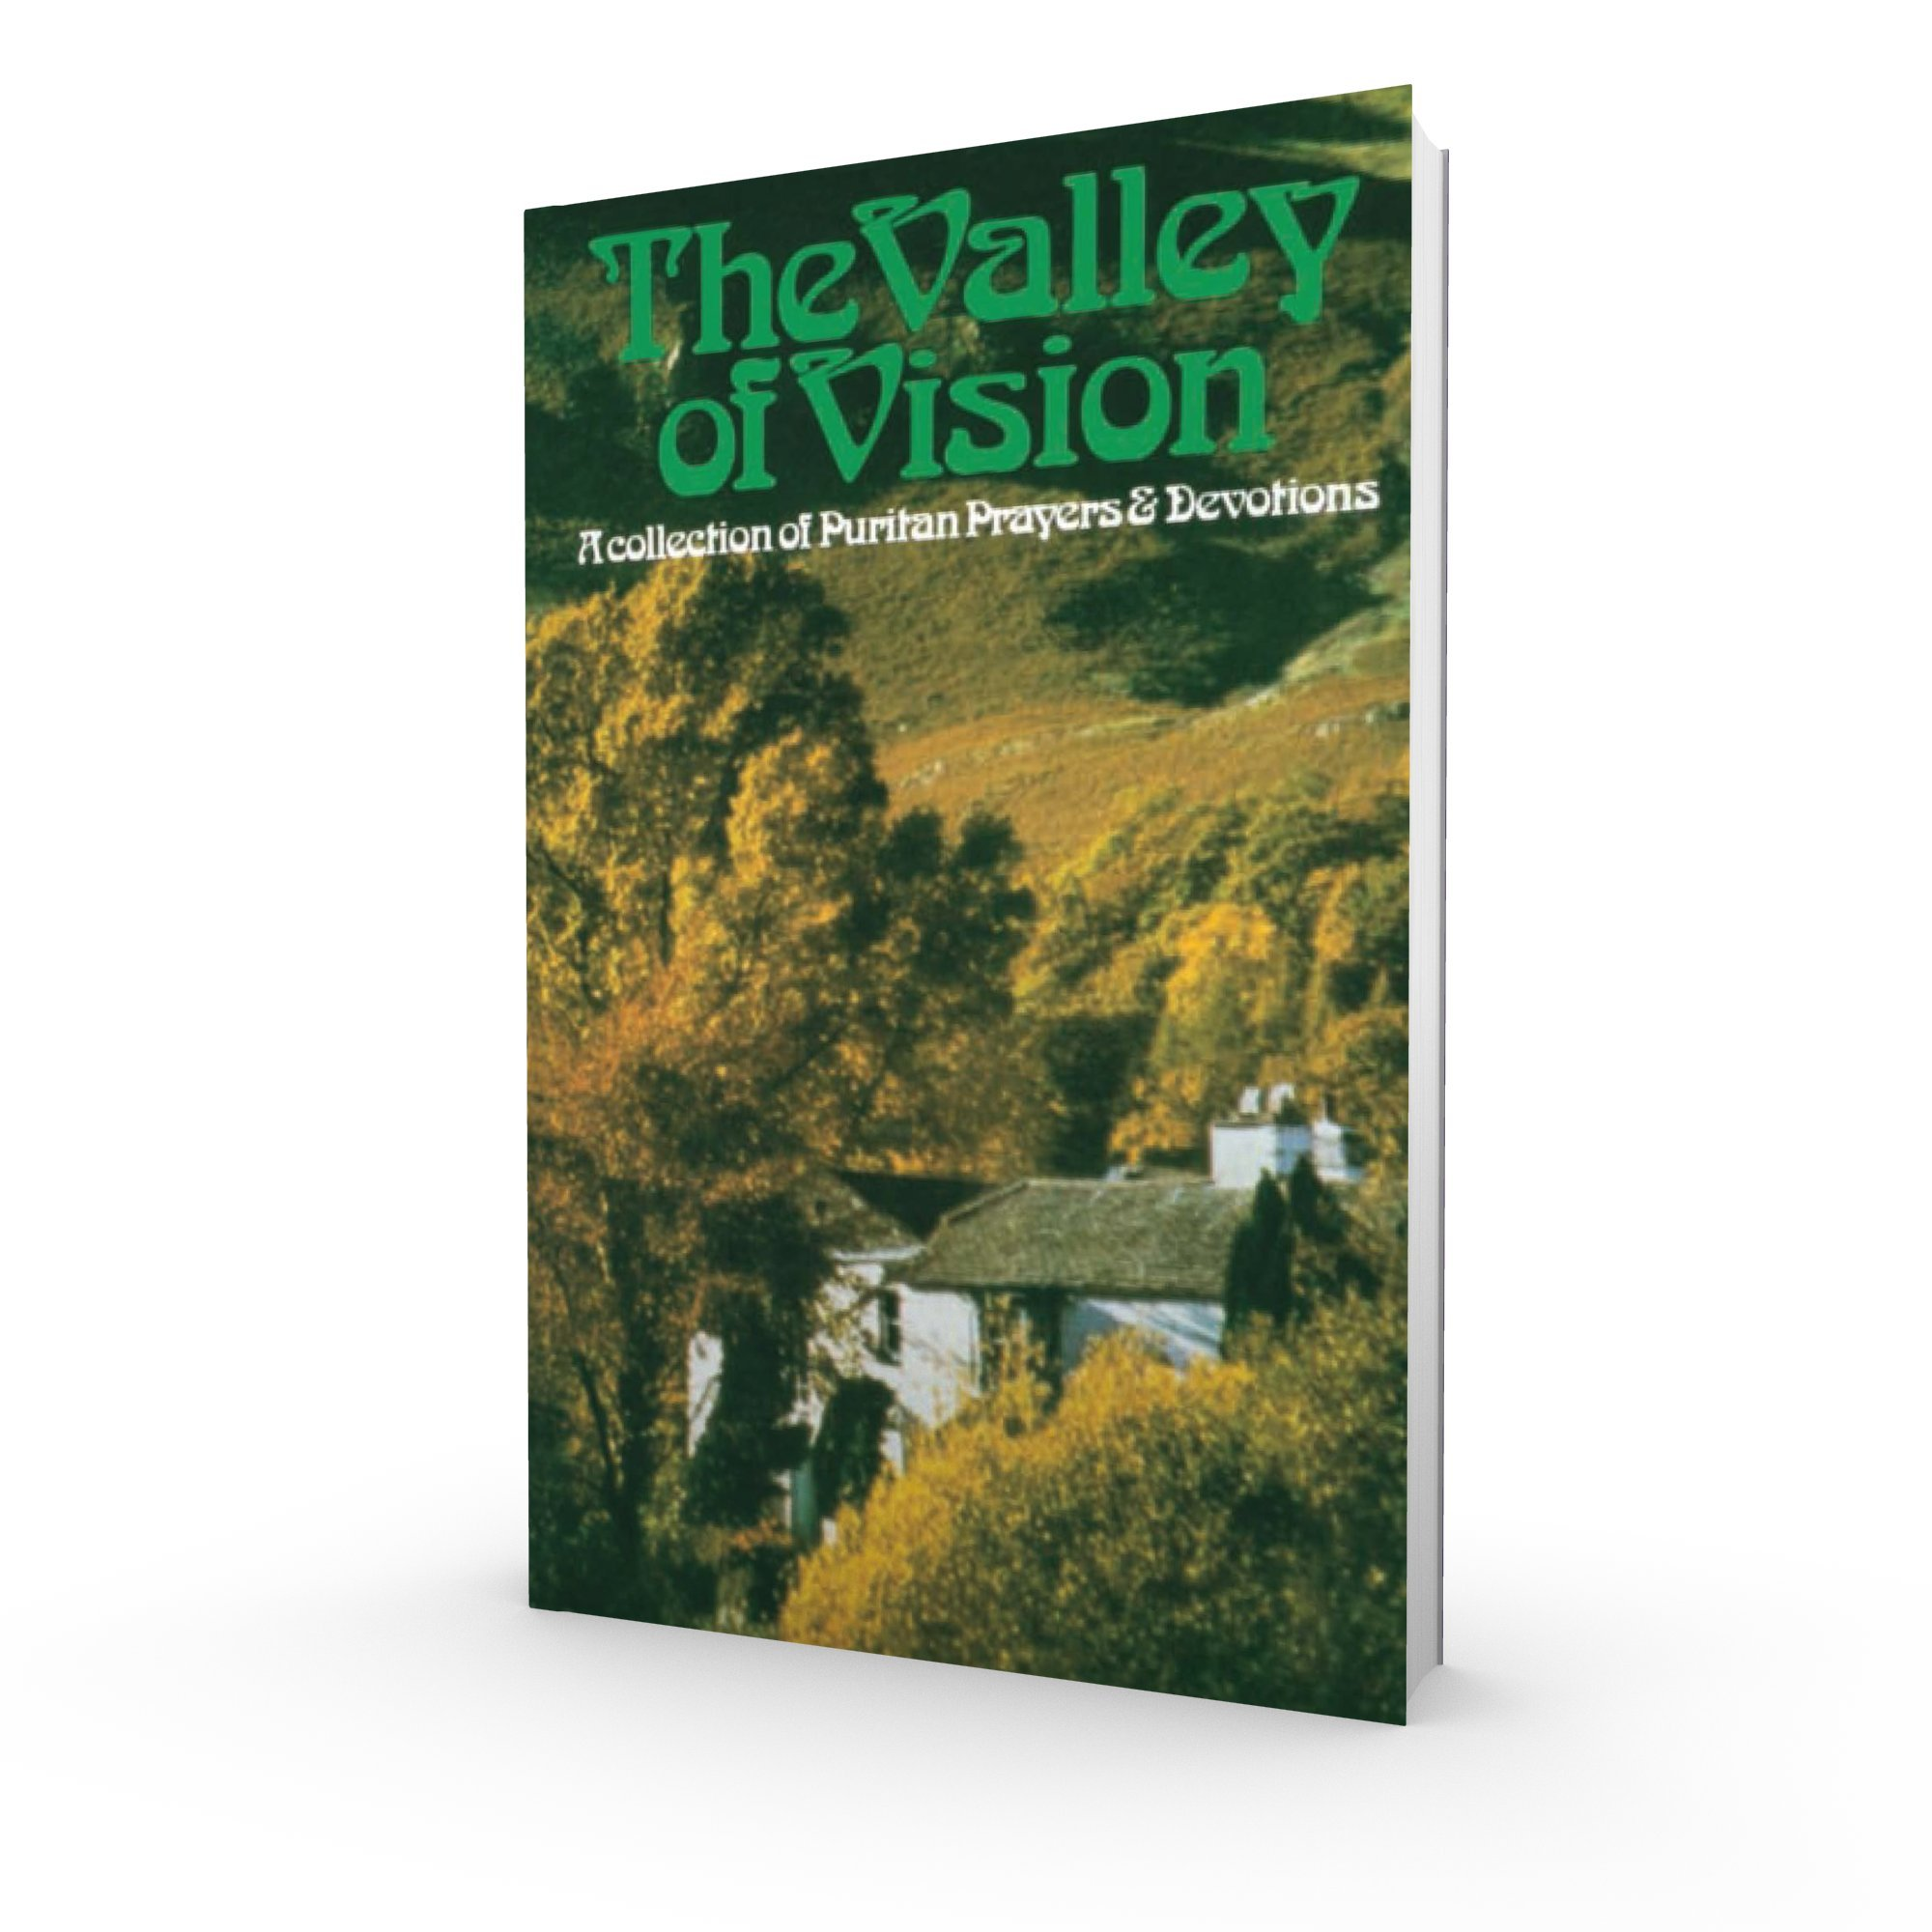 The Valley of Vision: A Collection of Puritan Prayers & Devotions: Arthur  Bennett: 9780851512280: Amazon.com: Books